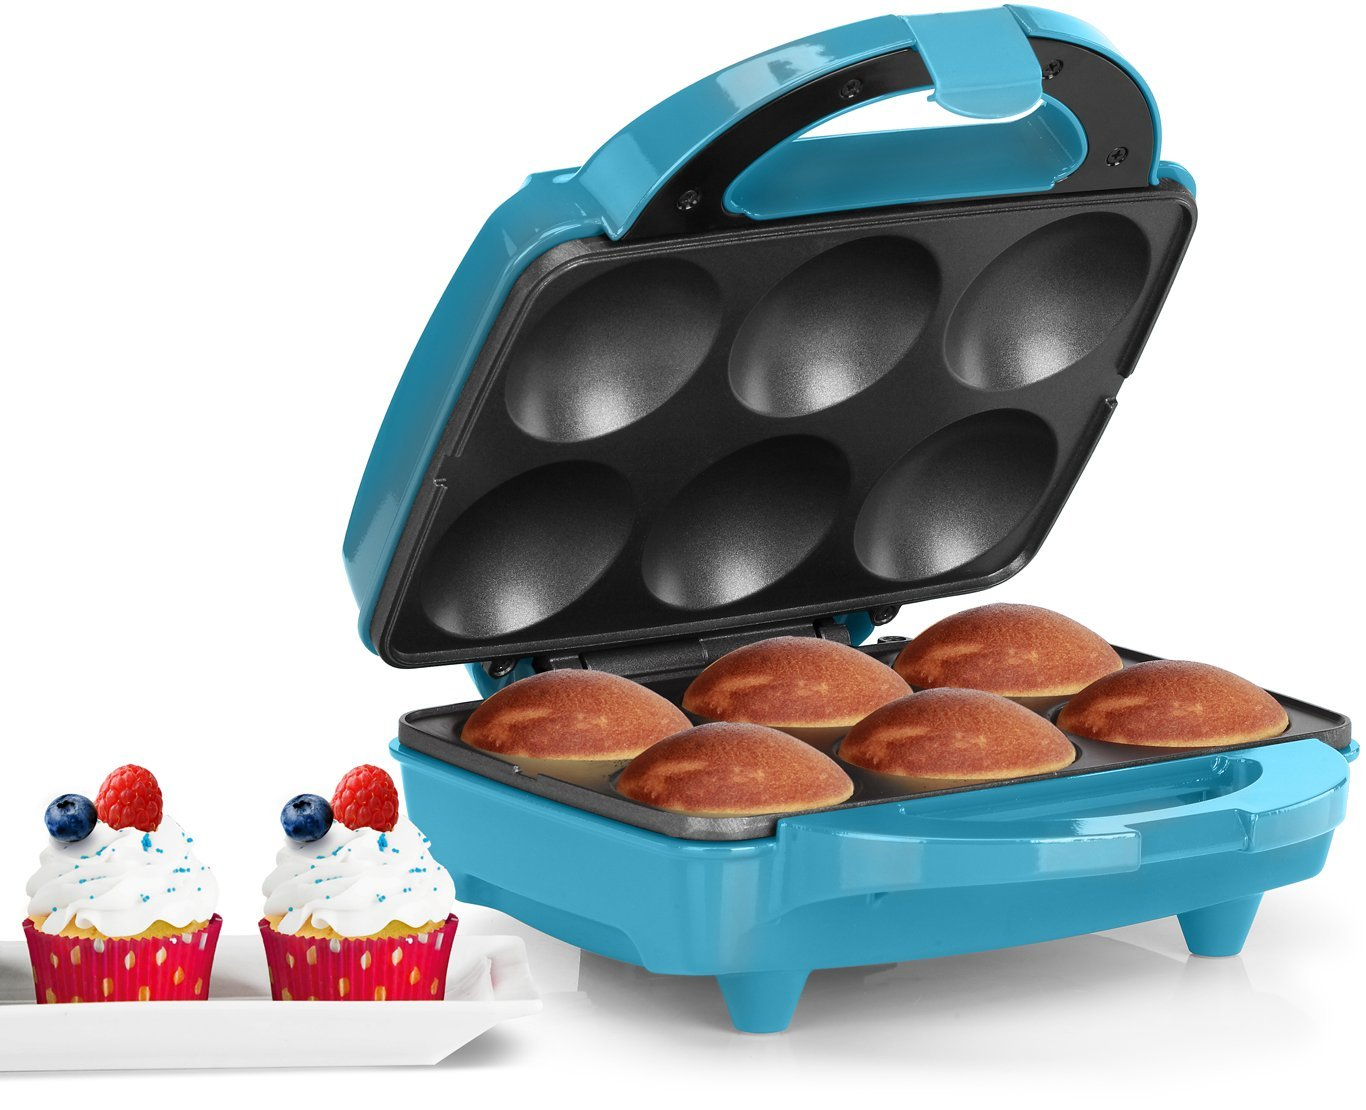 Holstein Housewares HF-09013T Fun Cupcake Maker - Teal/Stainless Steel by Holstein Housewares